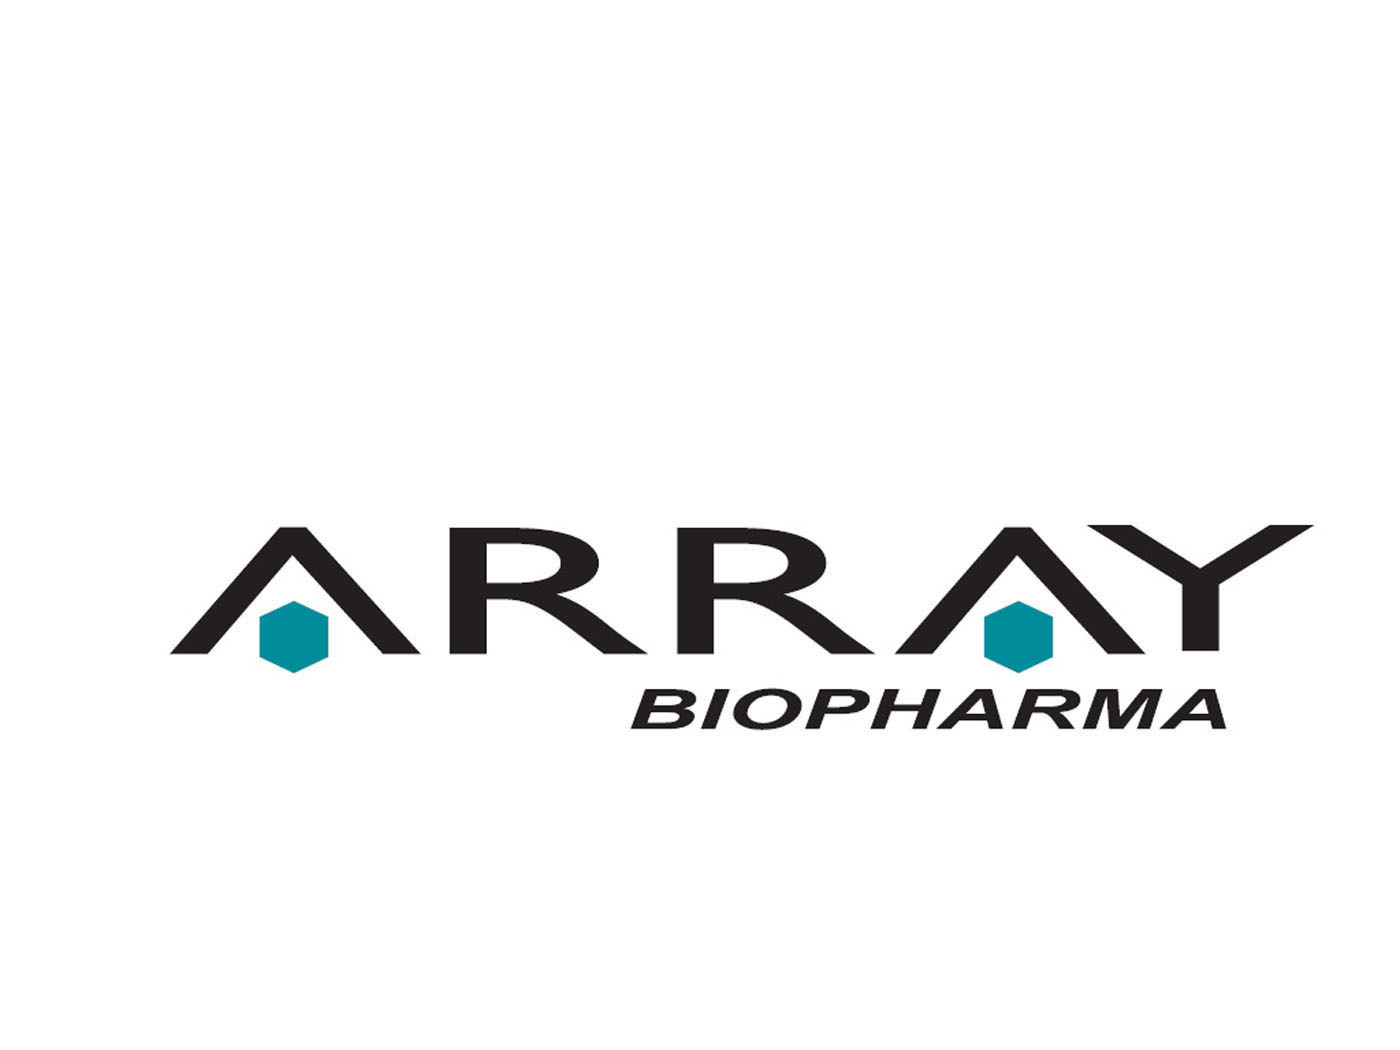 ARRAY BIOPHARMA INC. LOGO